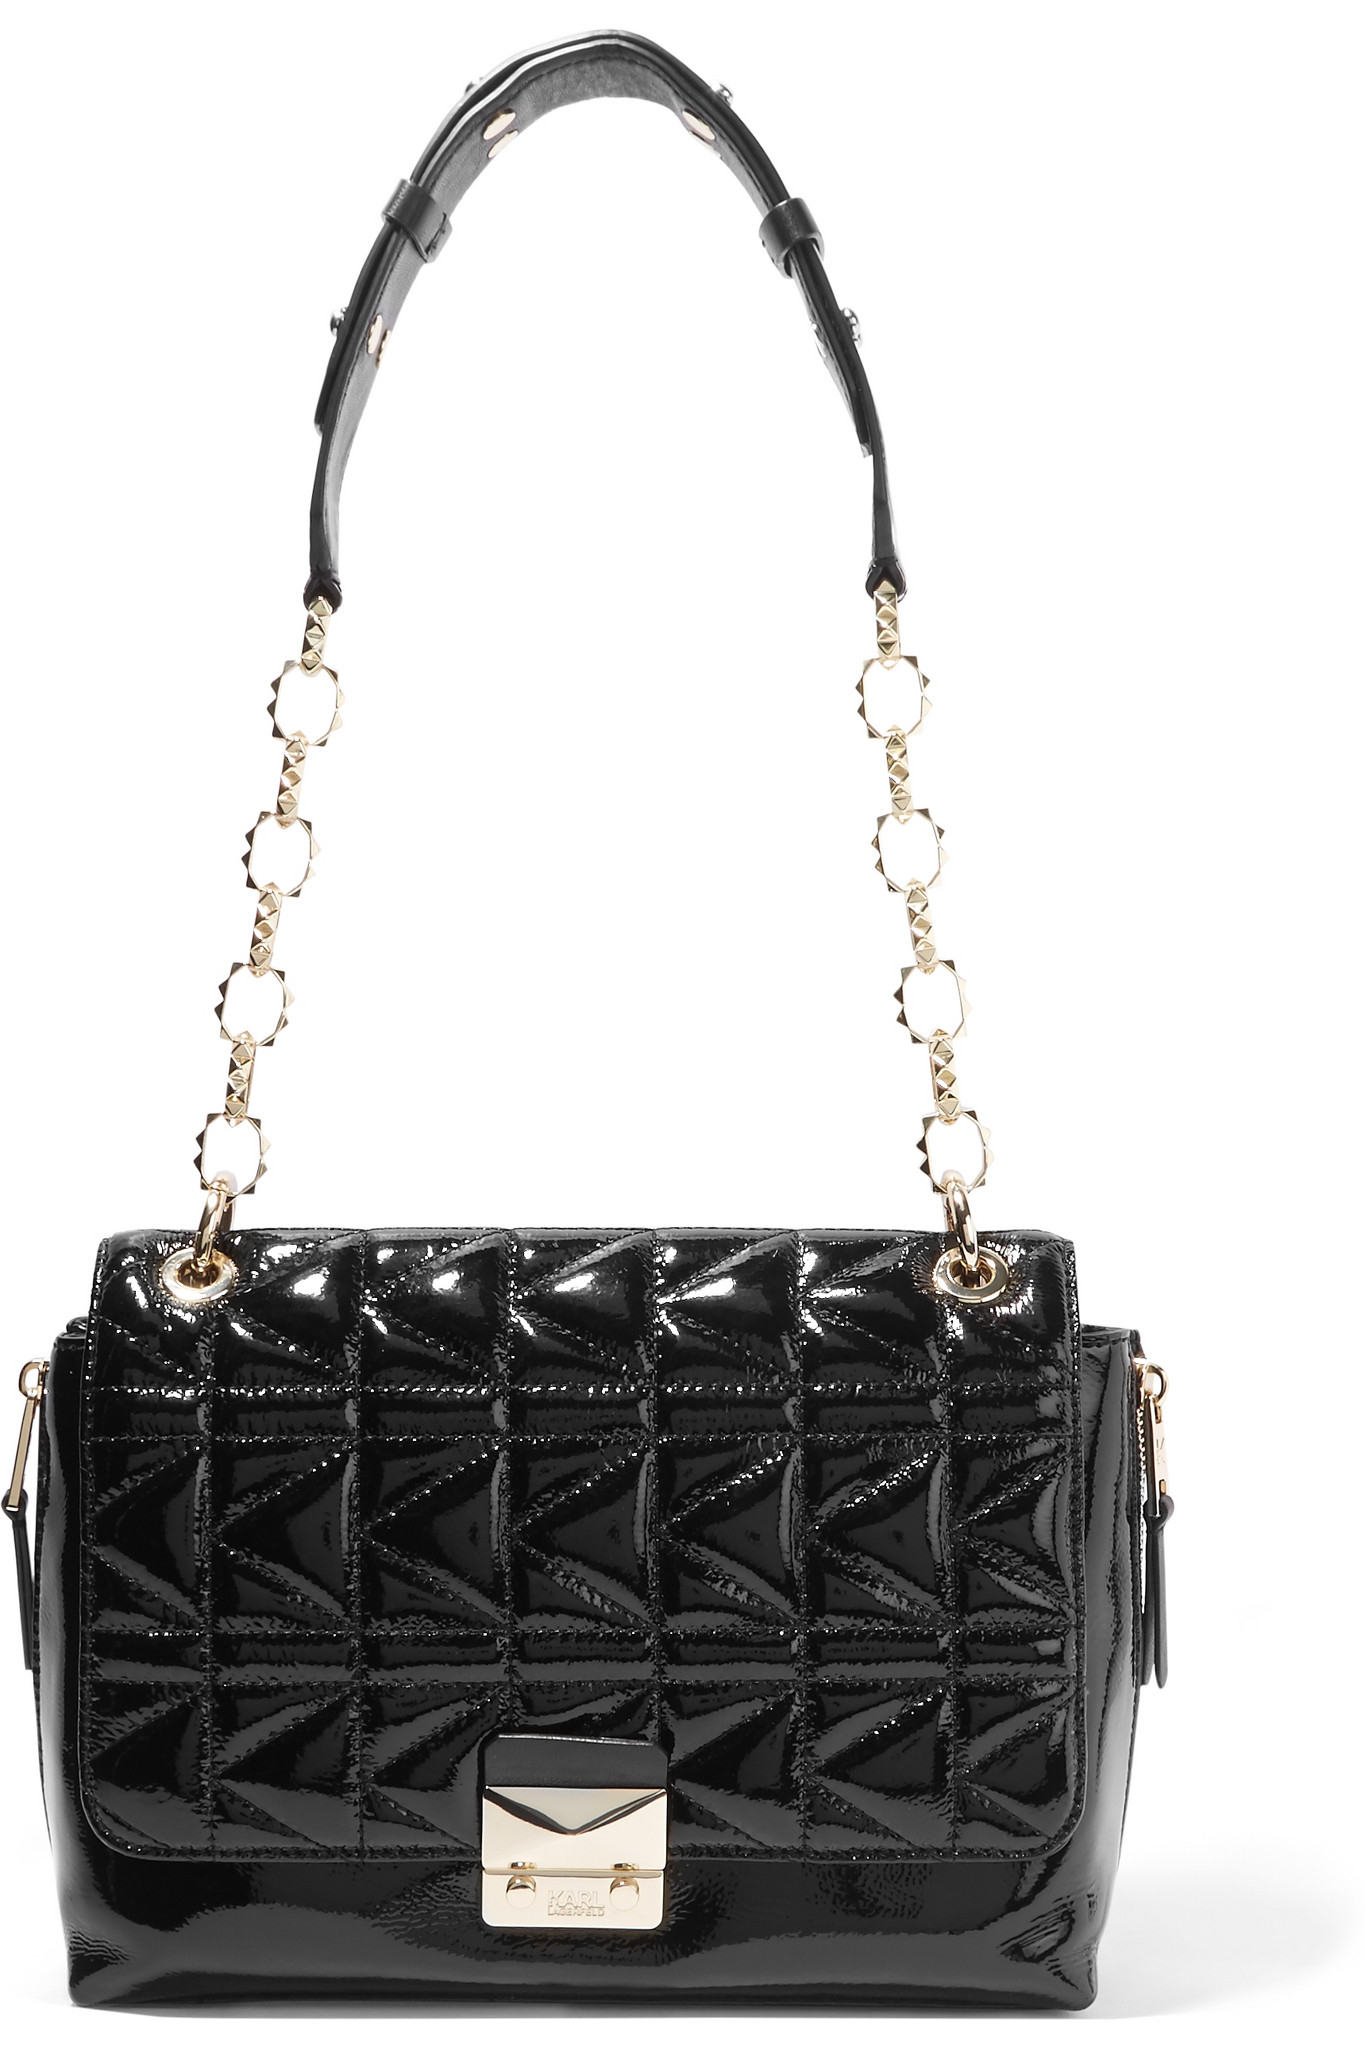 Black Patent Leather Bags Uk